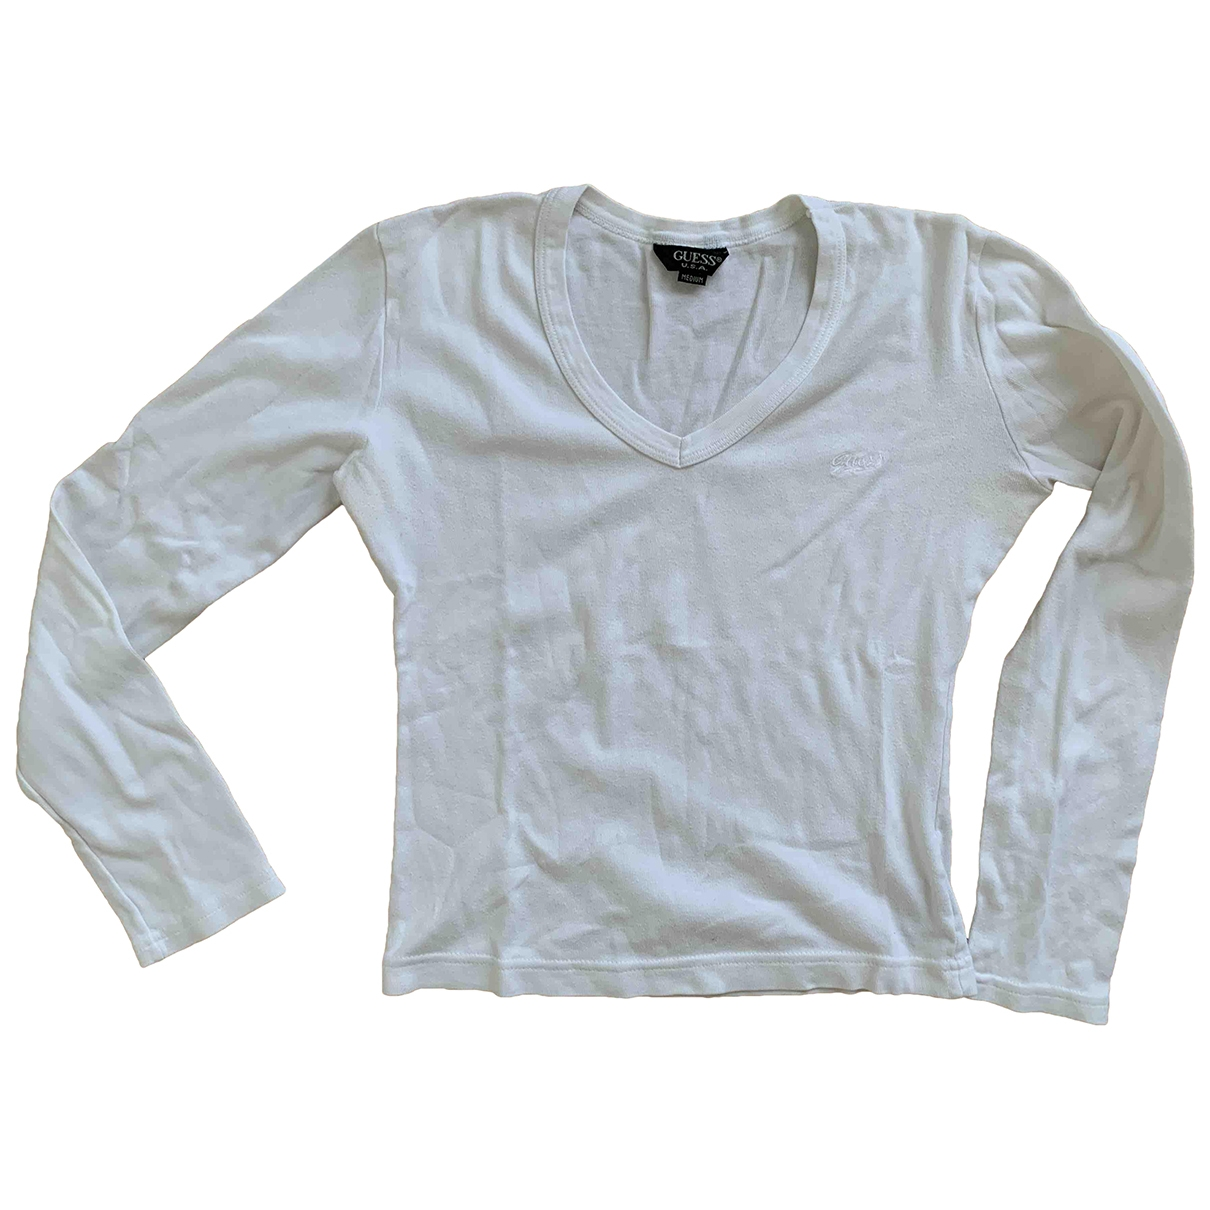 Guess \N White Cotton  top for Women 36 FR